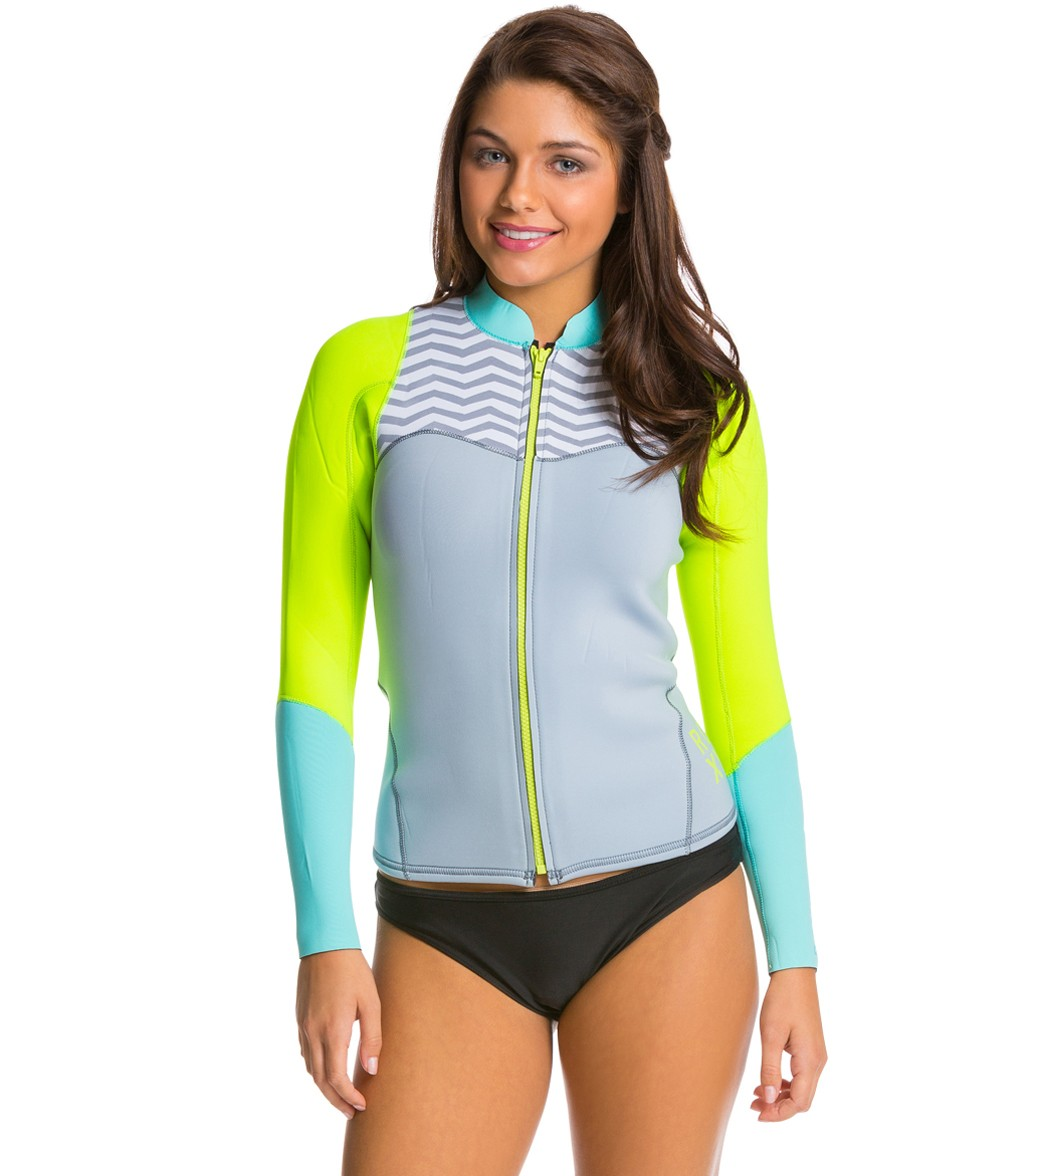 Roxy Women's 2mm XY Front Zip Long Sleeve Wetsuit Wetsuit Jacket.